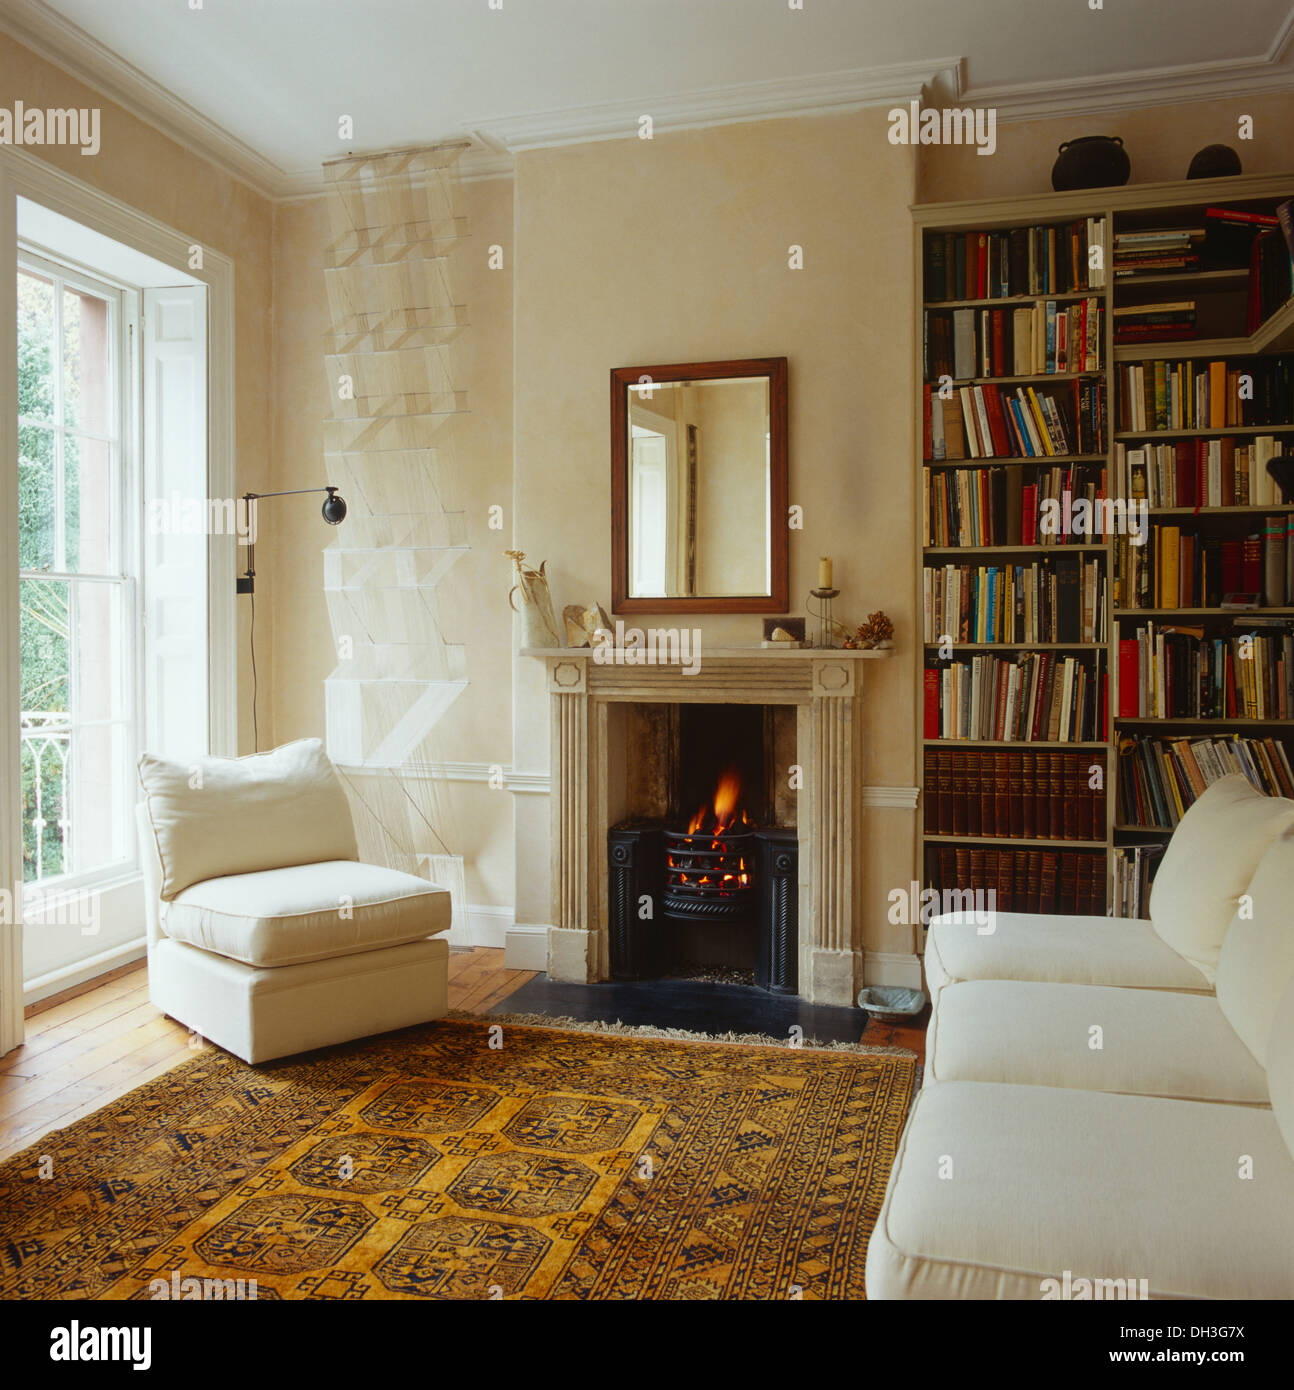 Stock Photo   White Chair And Sofa In White Living Room With Yellow  Patterned Oriental Rug In Front Of Georgian Fireplace With Lighted Fire